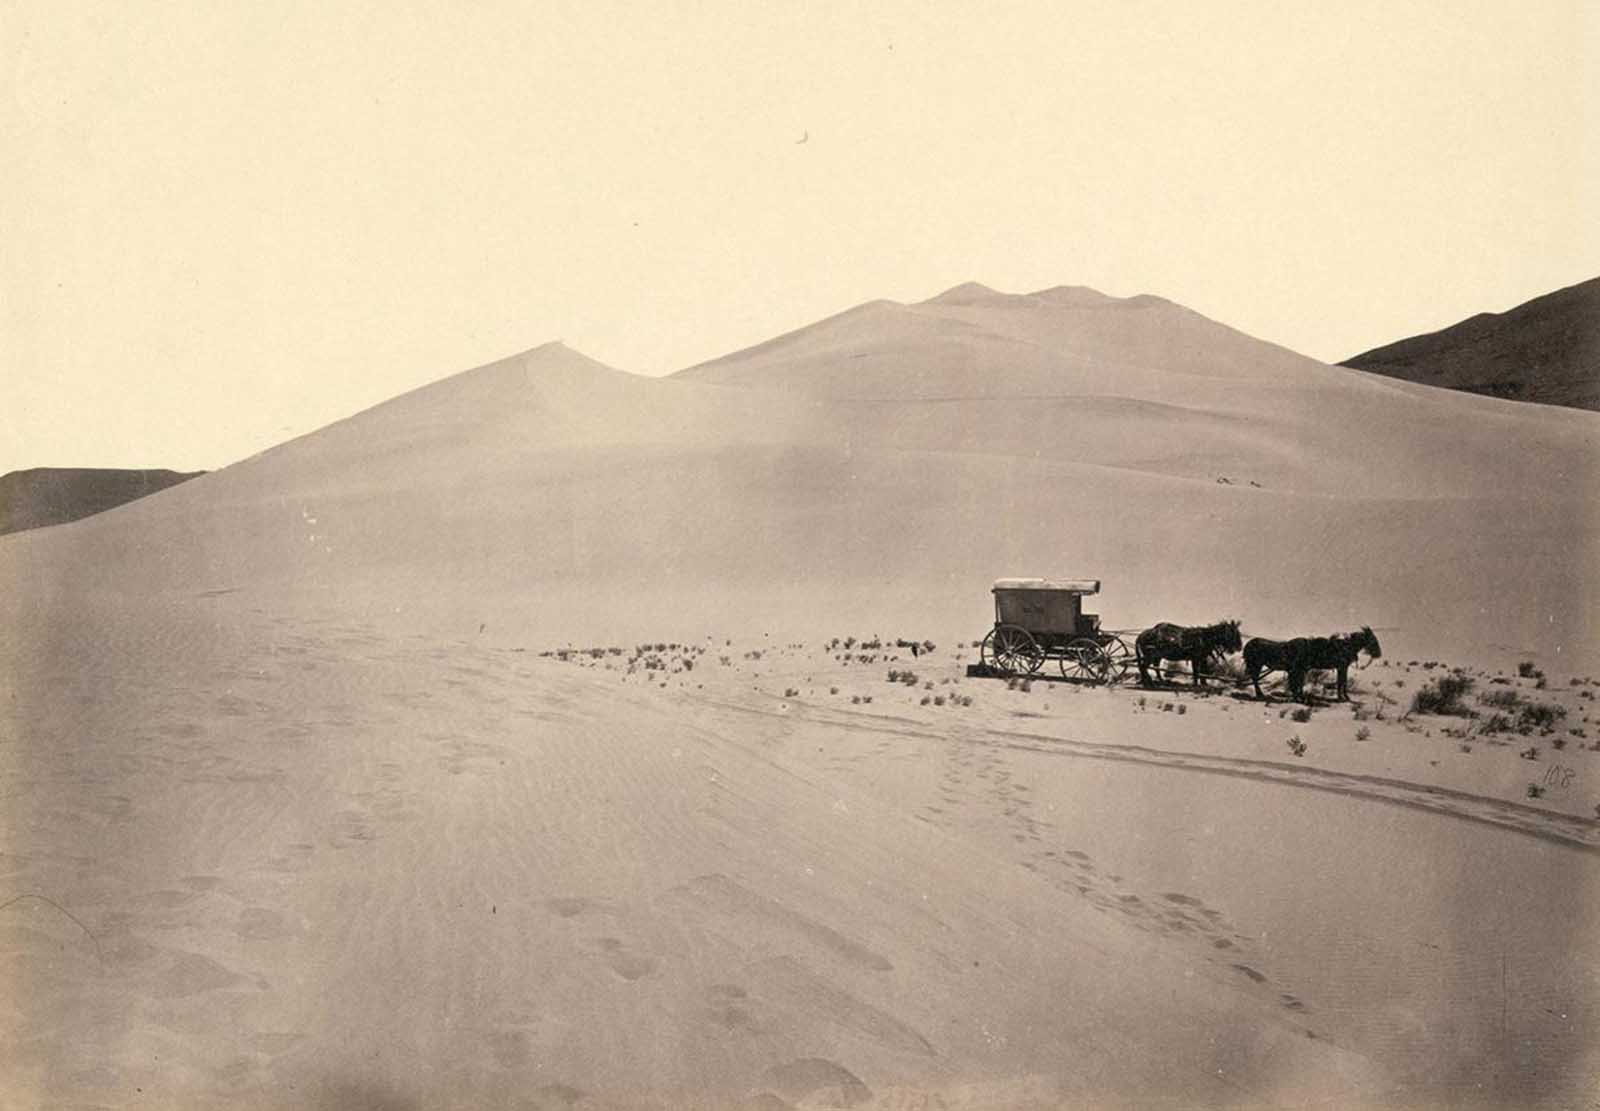 Timothy O'Sullivan's darkroom wagon, pulled by four mules, entered the frame at the right side of the photograph, reached the center of the image, and turned around, heading back out of the frame. Footprints lead from the wagon toward the camera, revealing the photographer's path. Photo taken in 1867, in the Carson Sink, part of Nevada's Carson Desert.